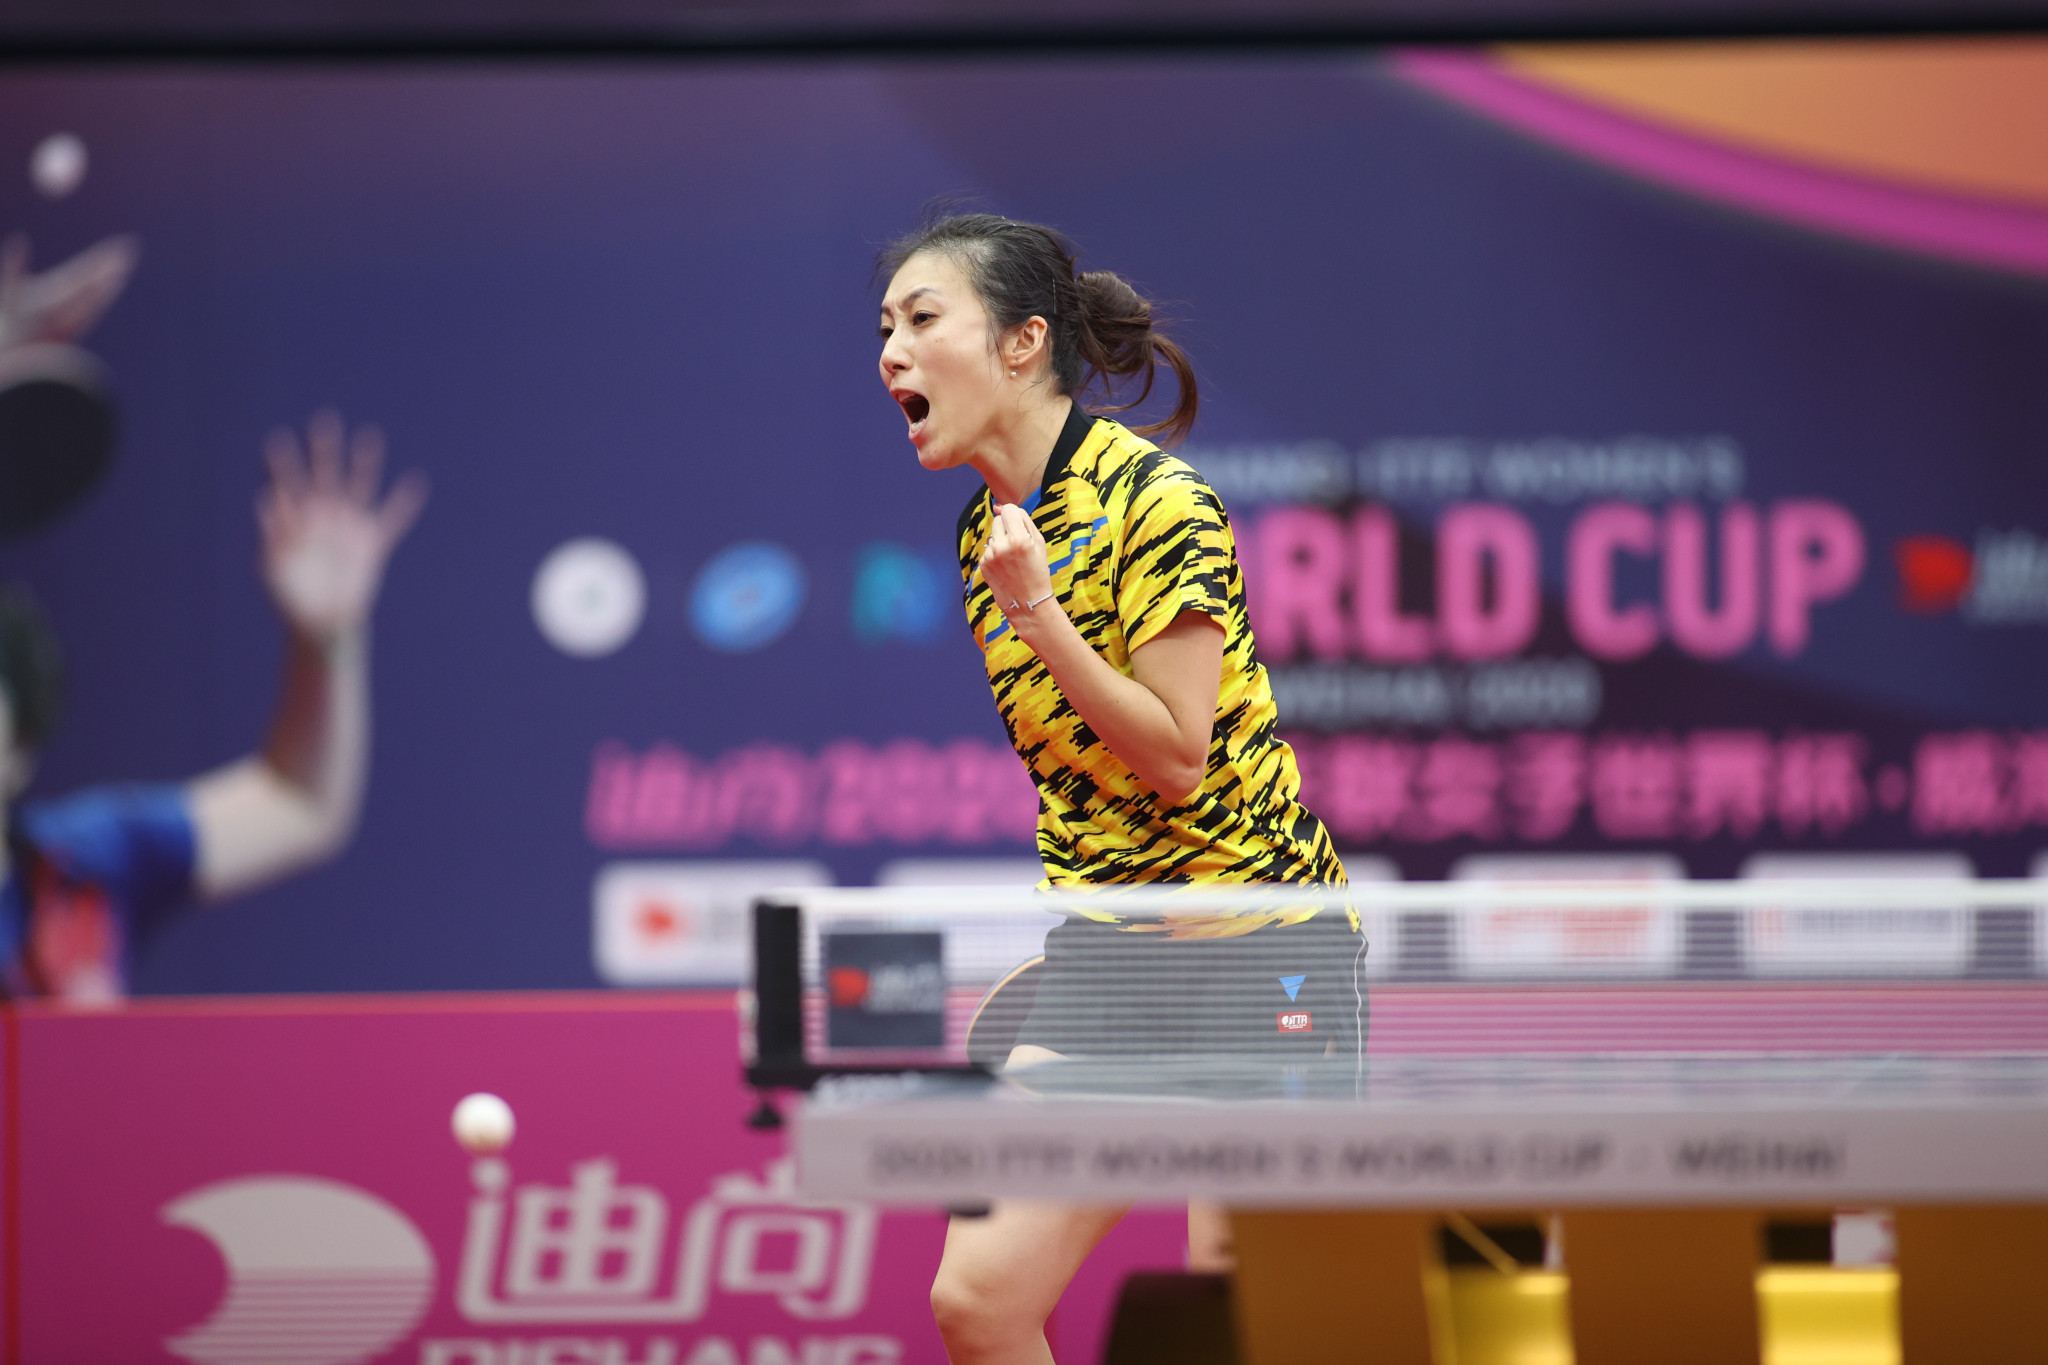 Germany's Han topples fourth seed to reach ITTF Women's World Cup semi-finals